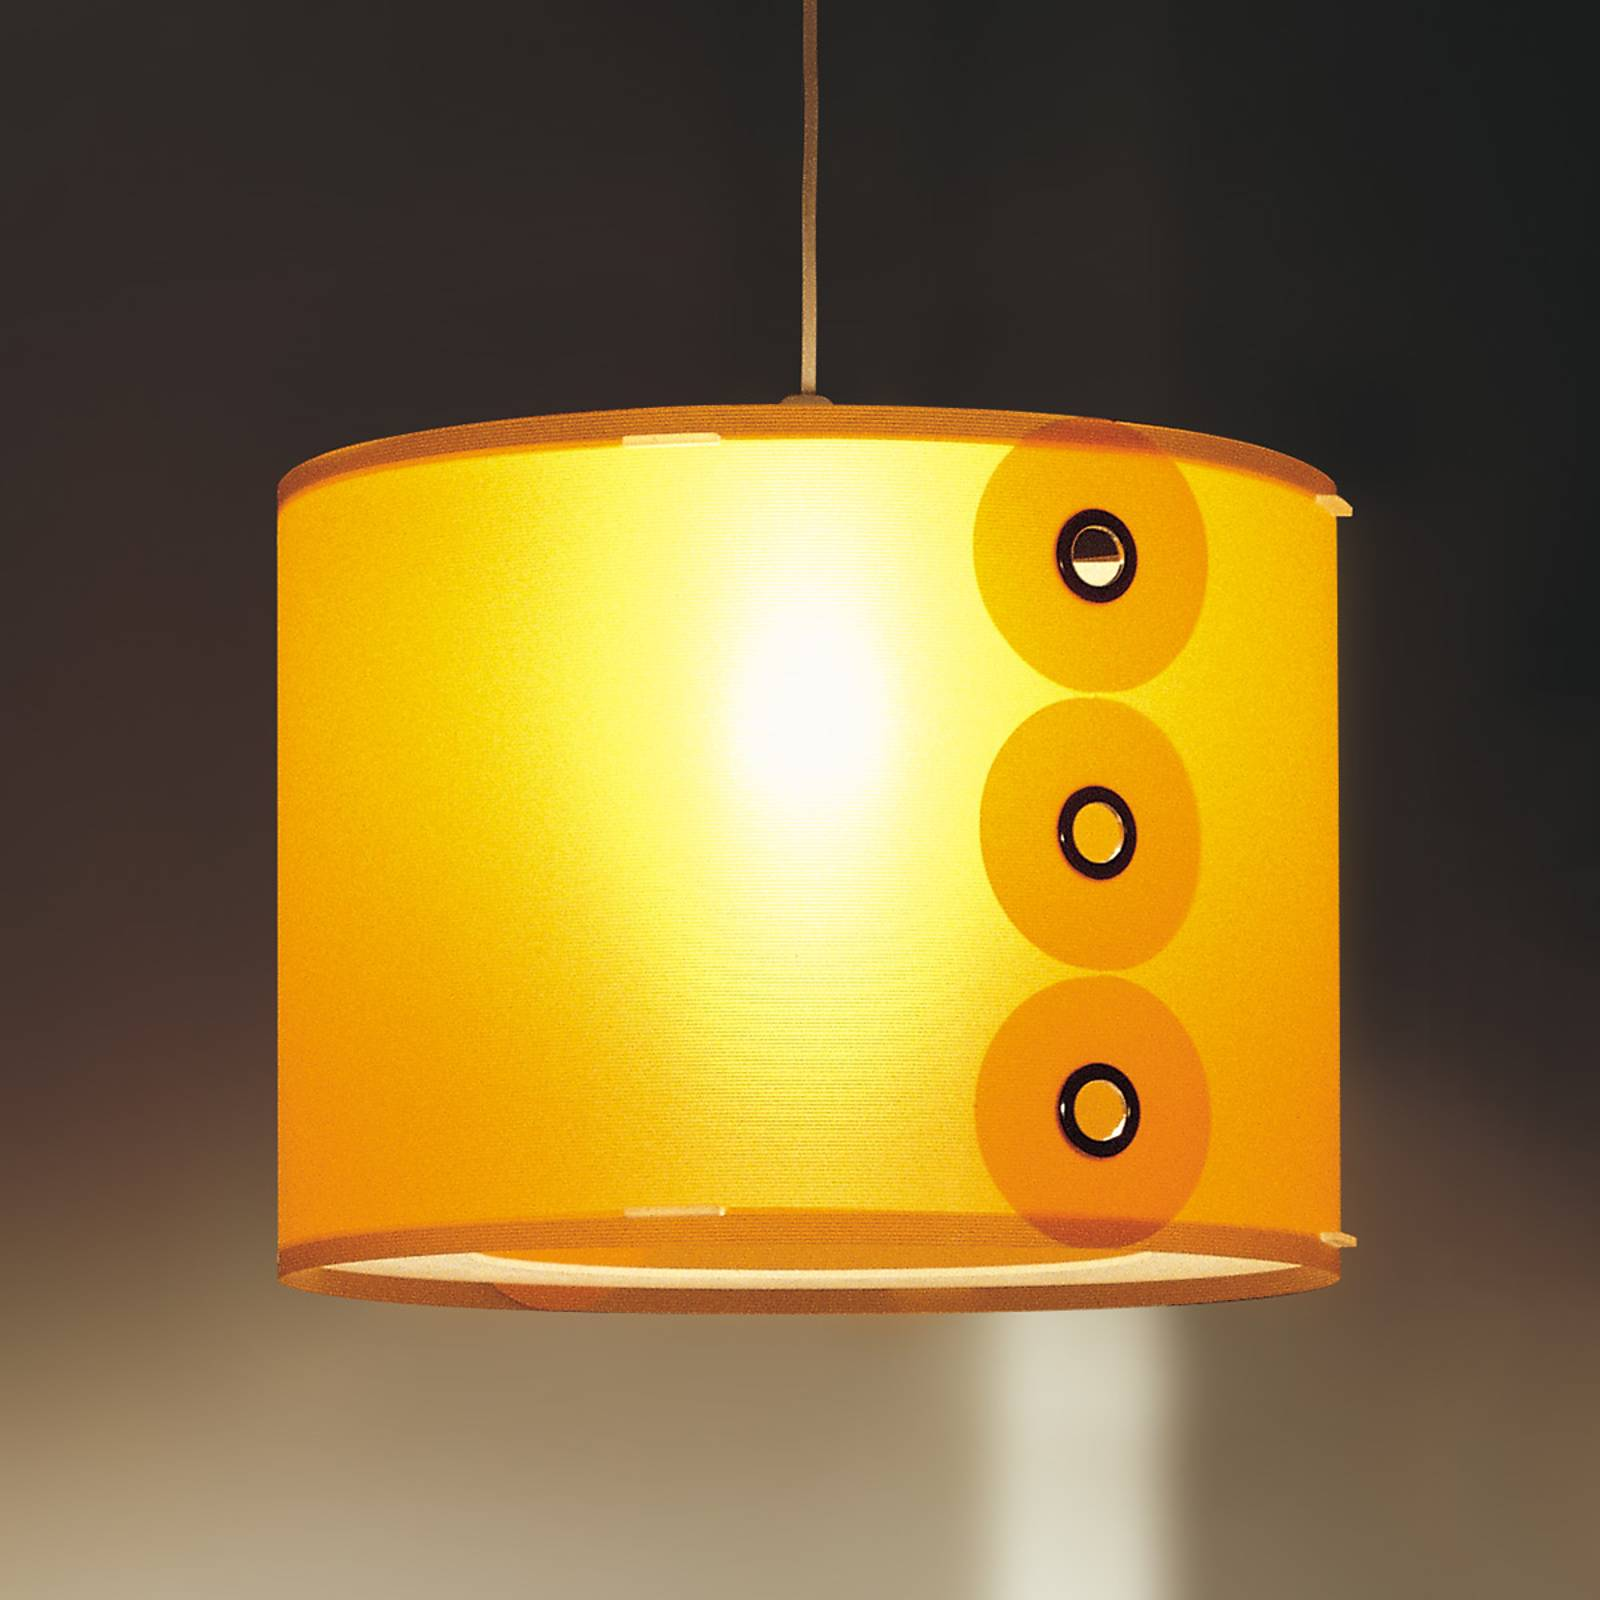 Orange pendant light Rotho from Artempo Italia